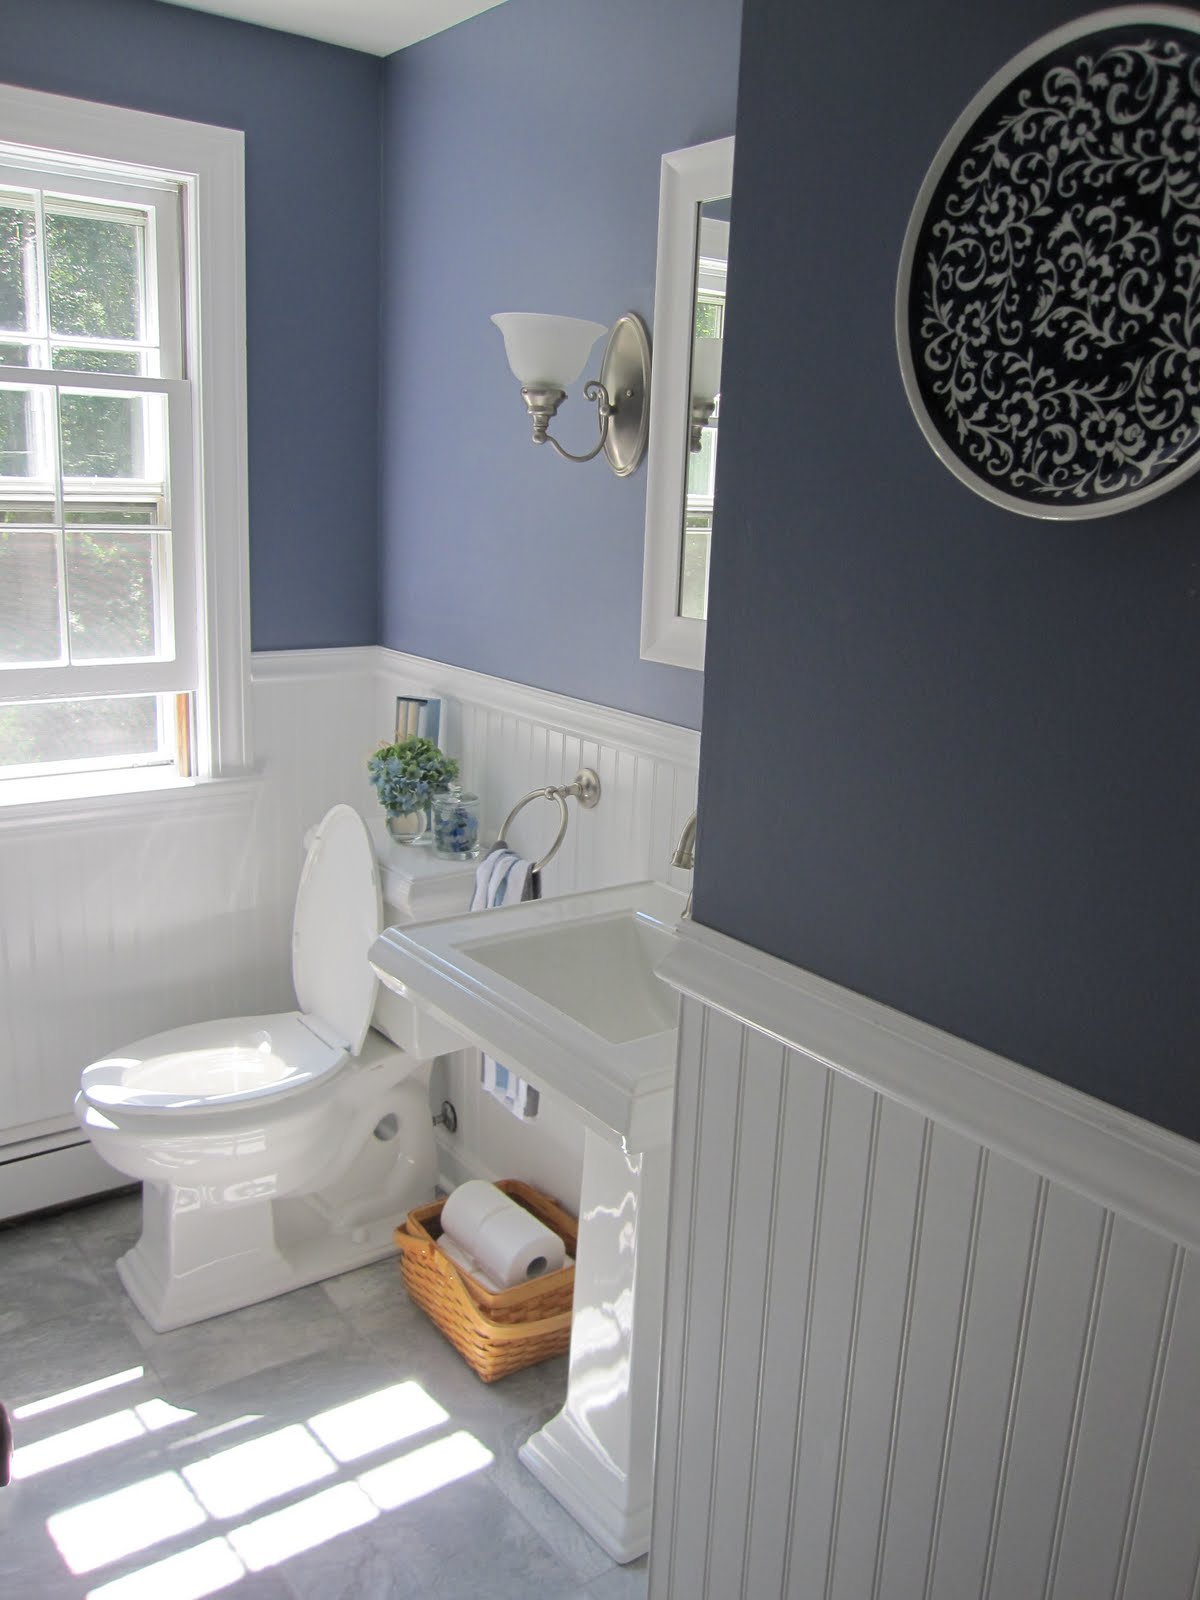 Half bath redo - Bathroom remodel ideas with wainscoting ...